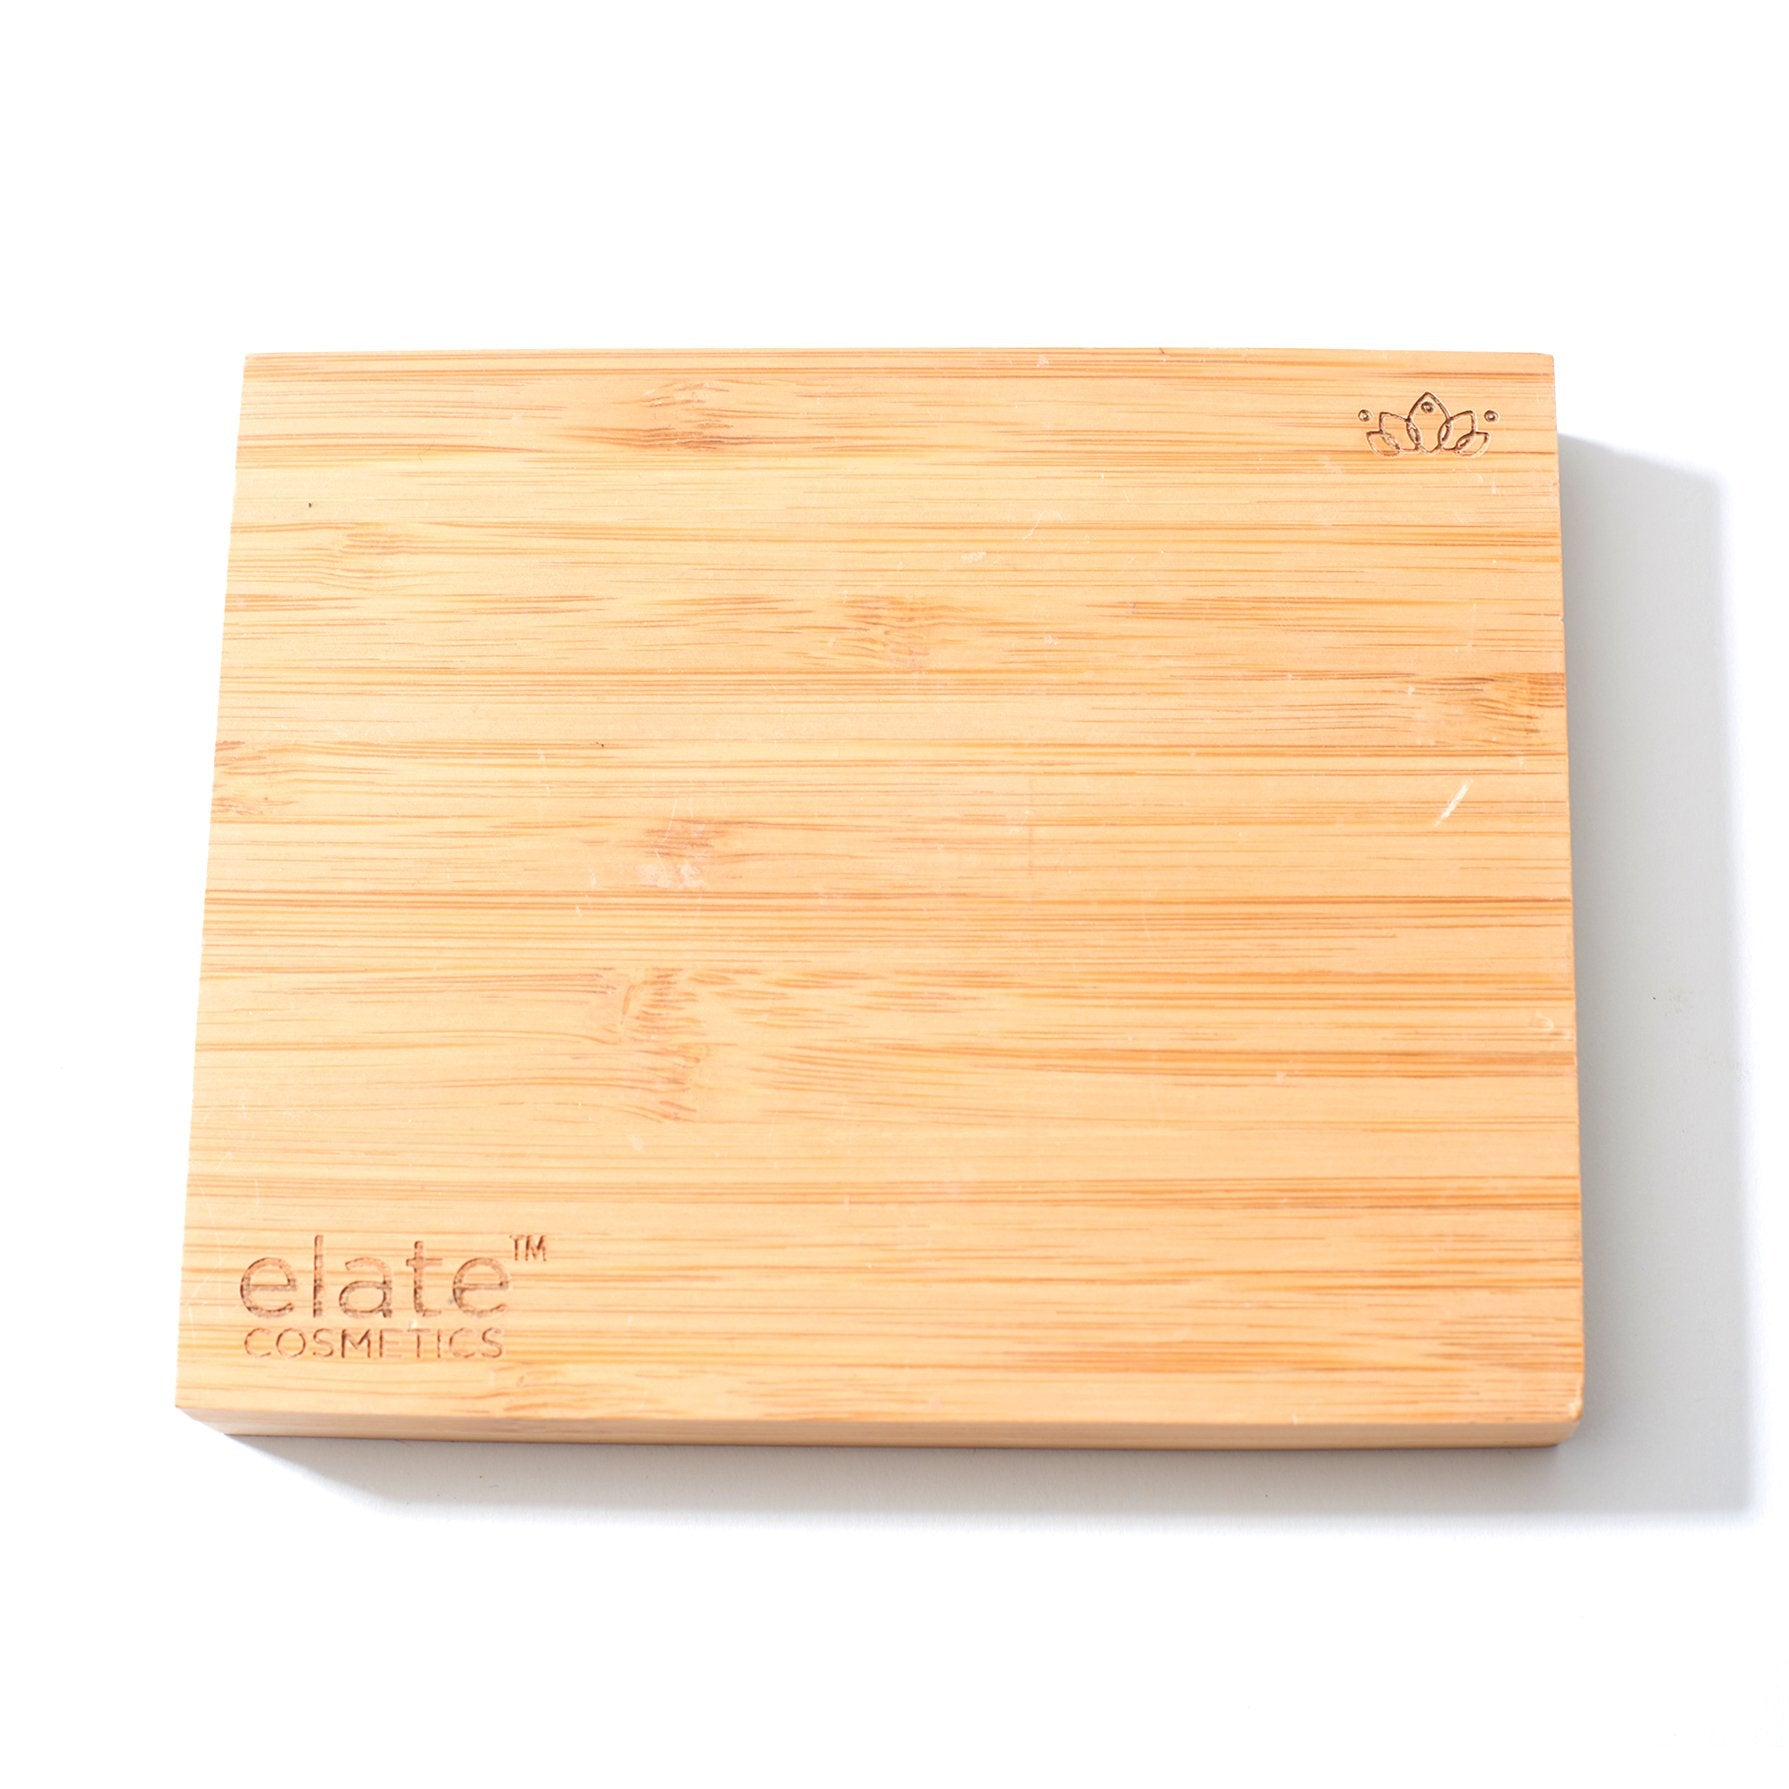 elate cosmetics vegan, sustainable and cruelty-free clean beauty bamboo makeup compact with sustainable material waste free clean beauty